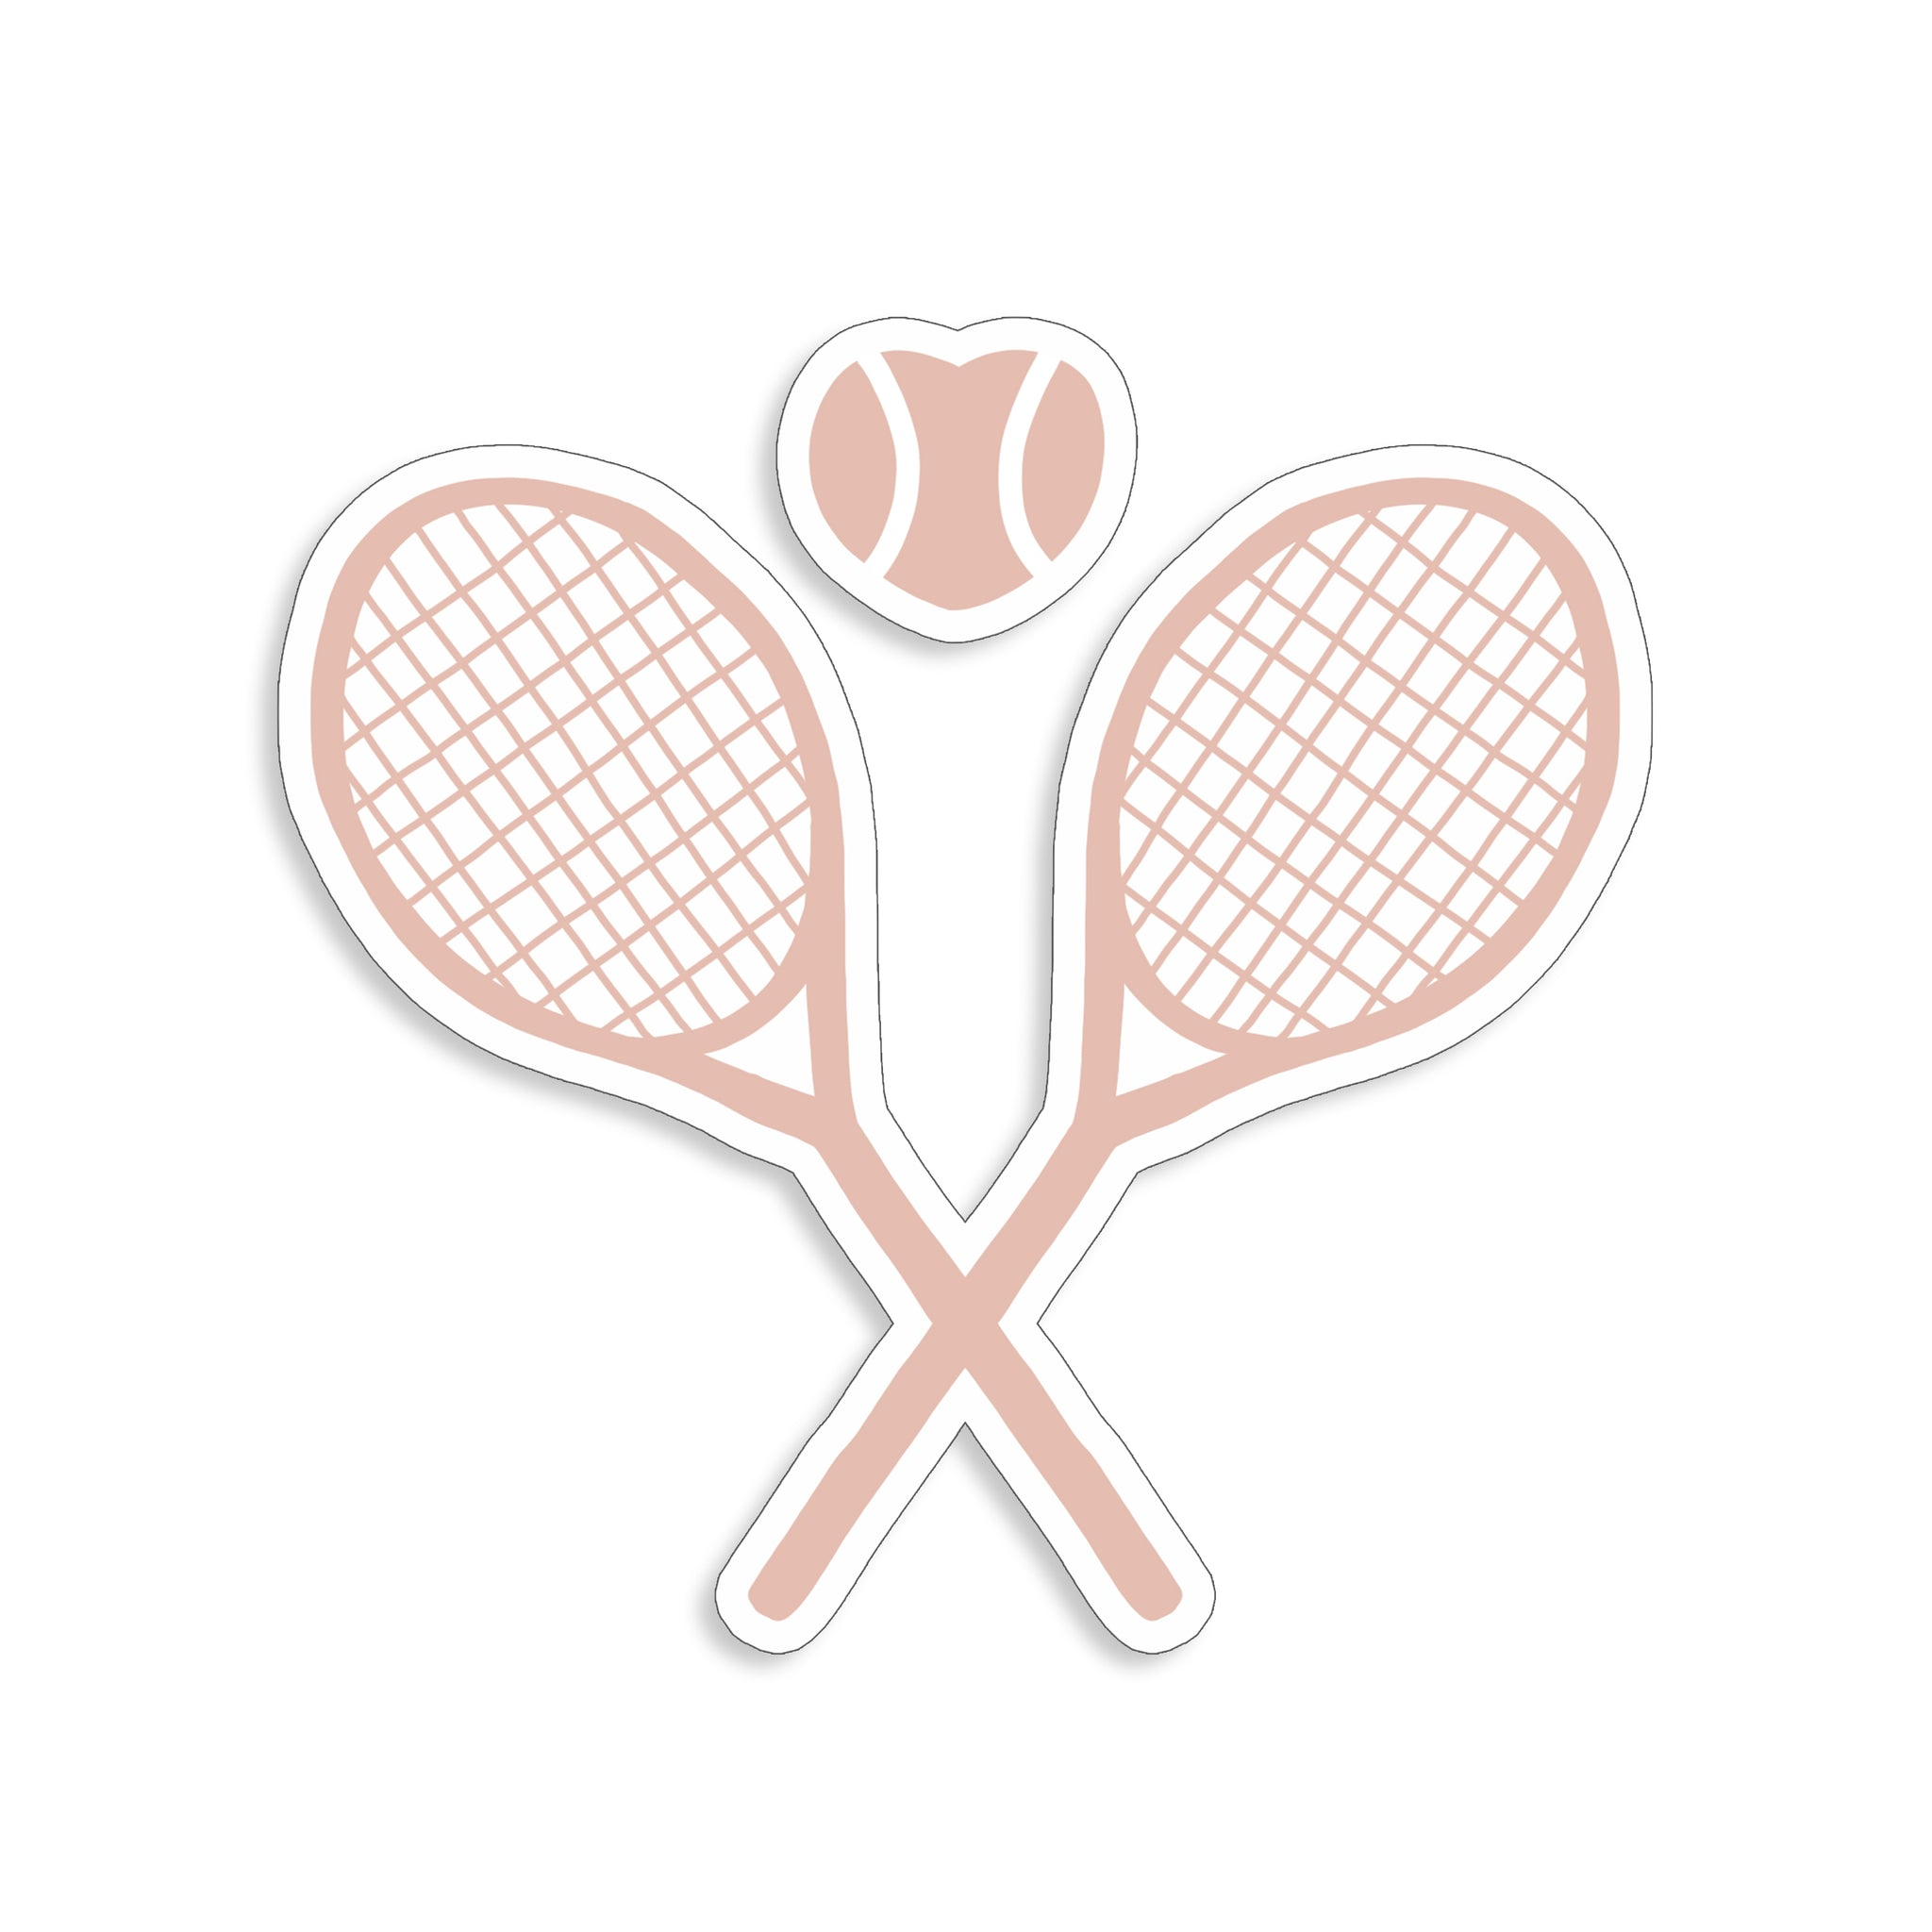 Heart Tennis Racquet Sticker